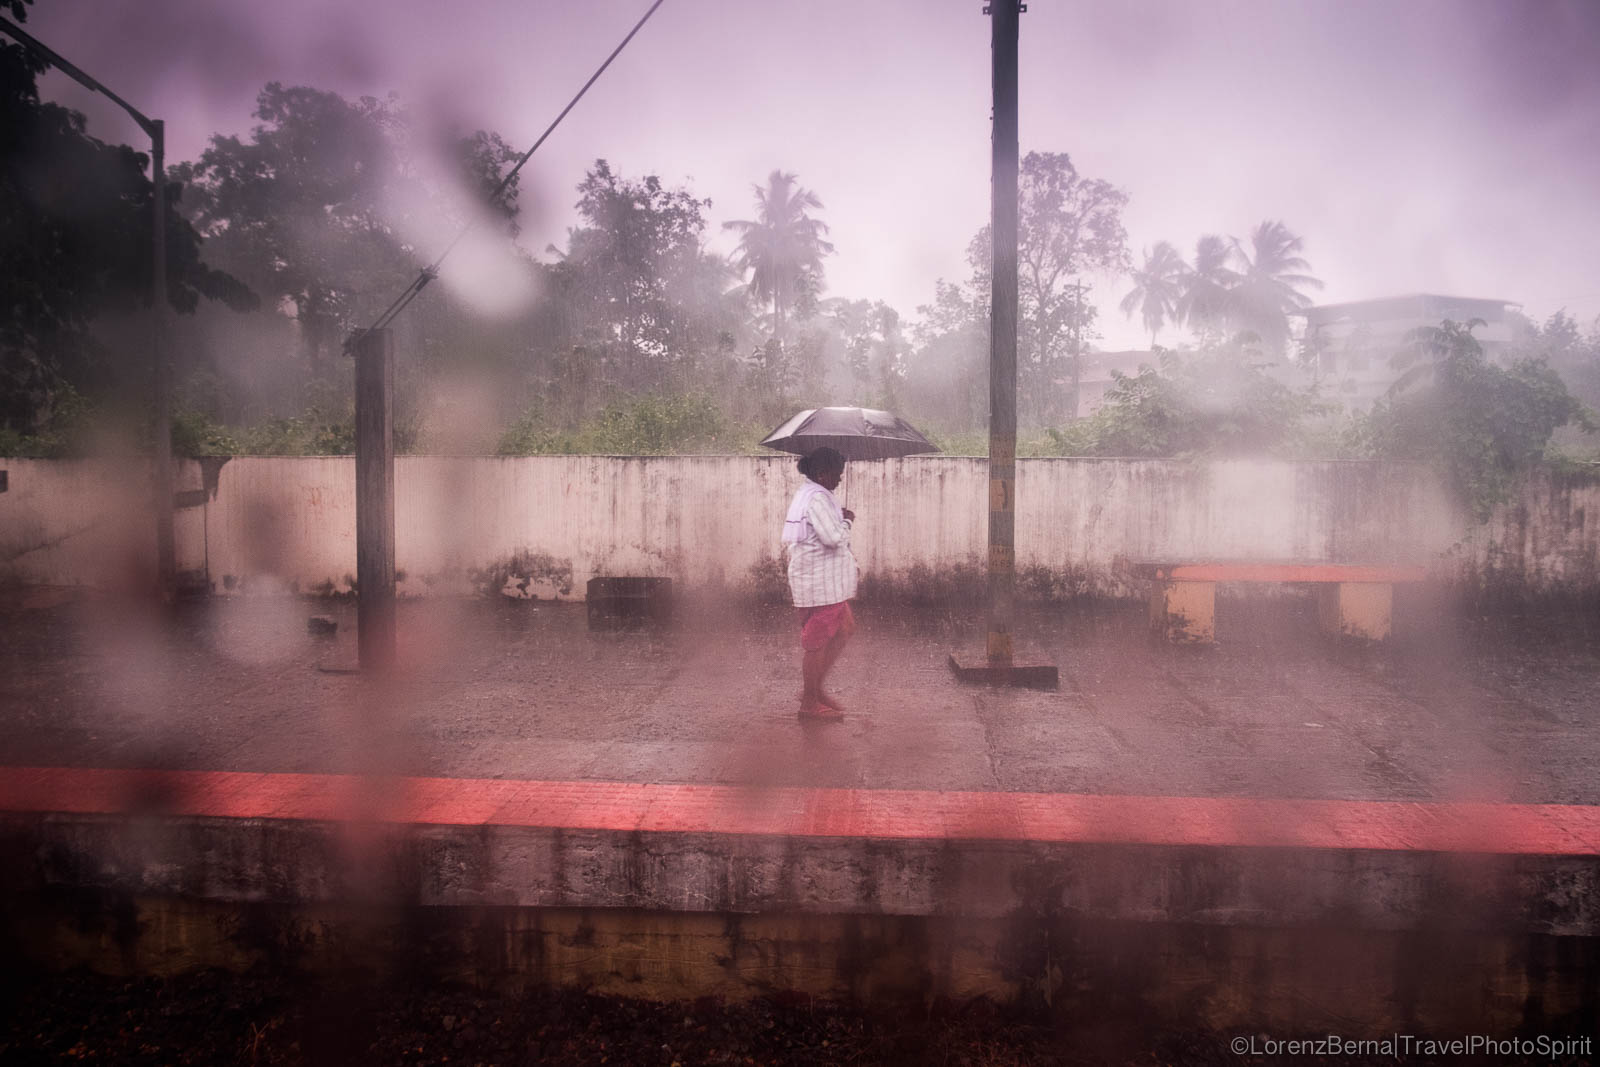 Street Photography under the monsoon rain : a man is waiting under an umbrella at a train station in Kerala, India